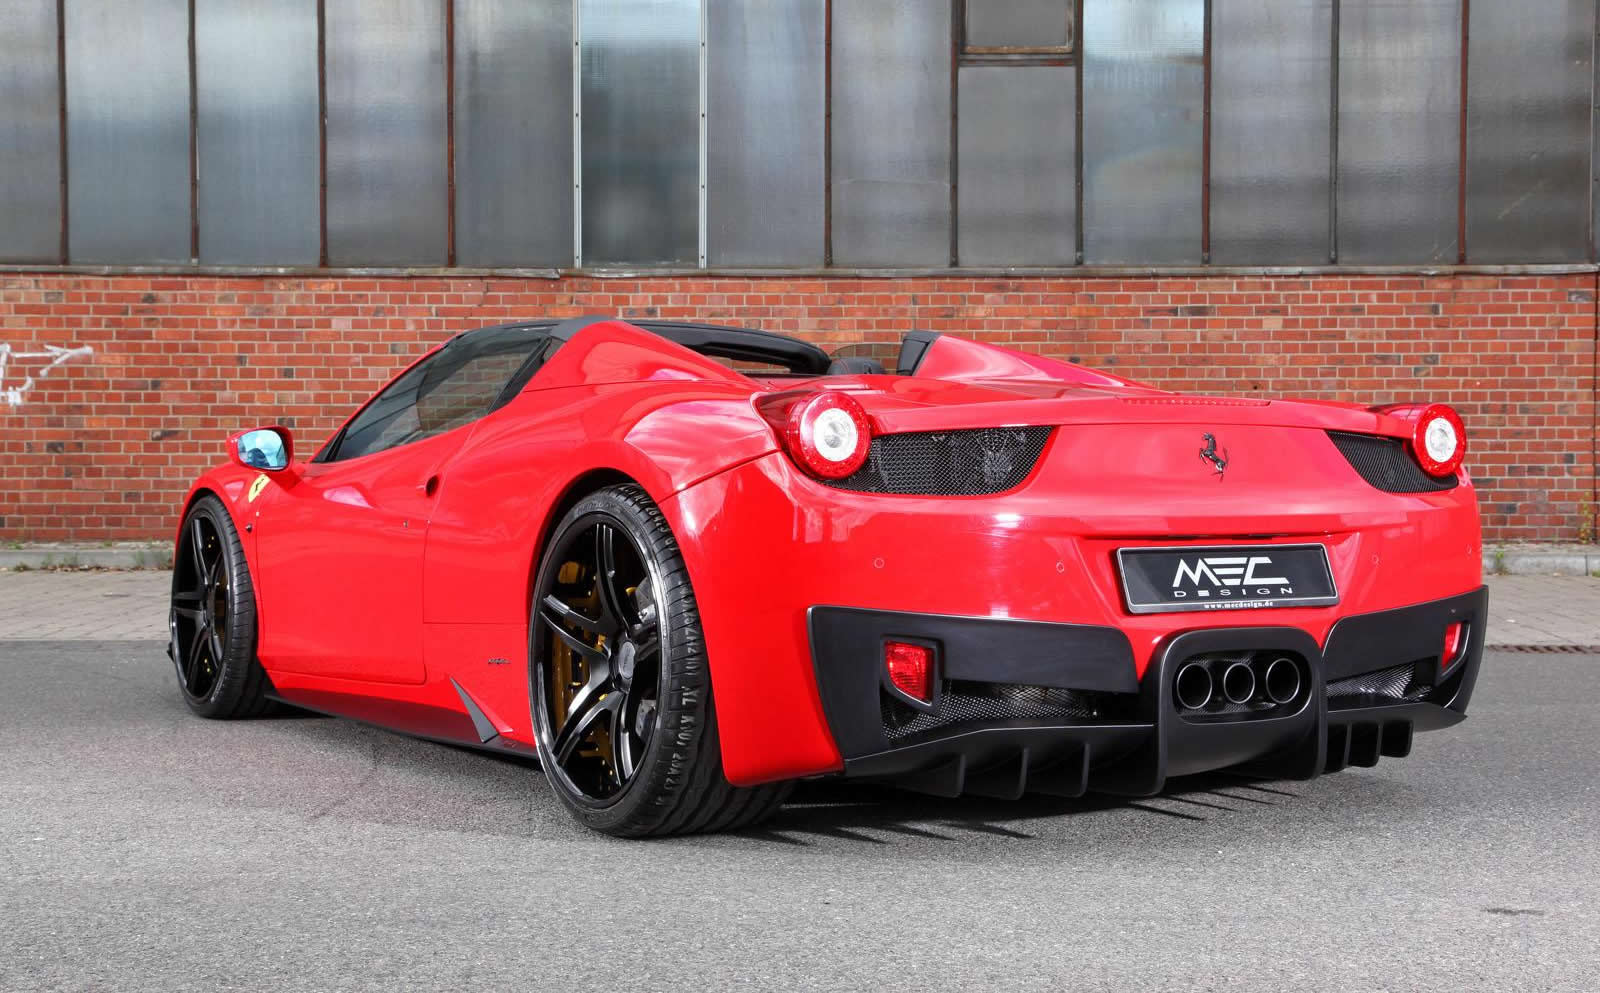 2014 ferrari 458 spider by mec design photos specs and review rs. Black Bedroom Furniture Sets. Home Design Ideas